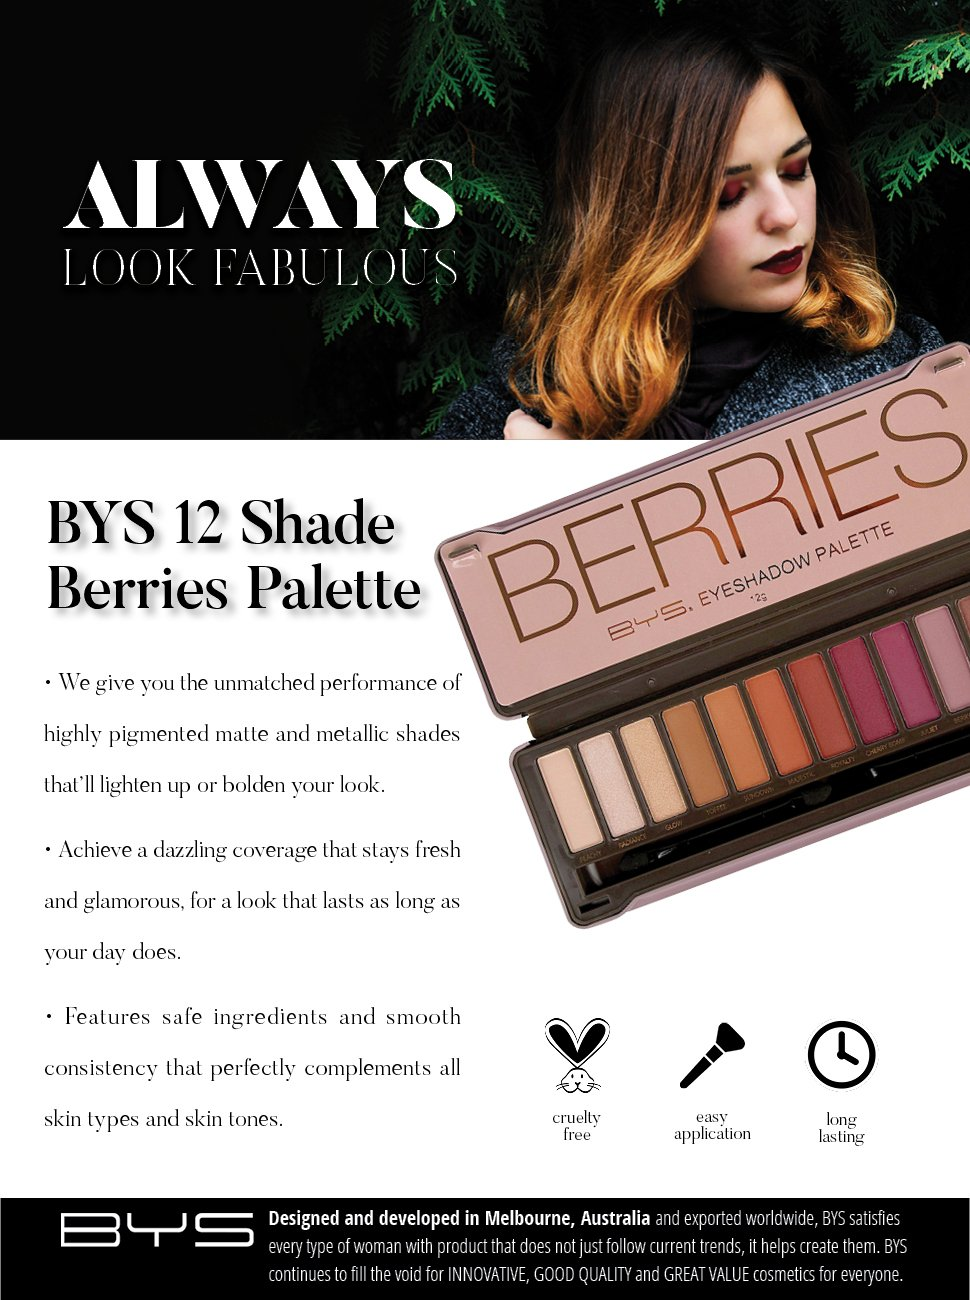 BYS Berries Eyeshadow Palette Tin with Mirror Applicator 12 Matte & Metallic Shades by BYS (Image #2)